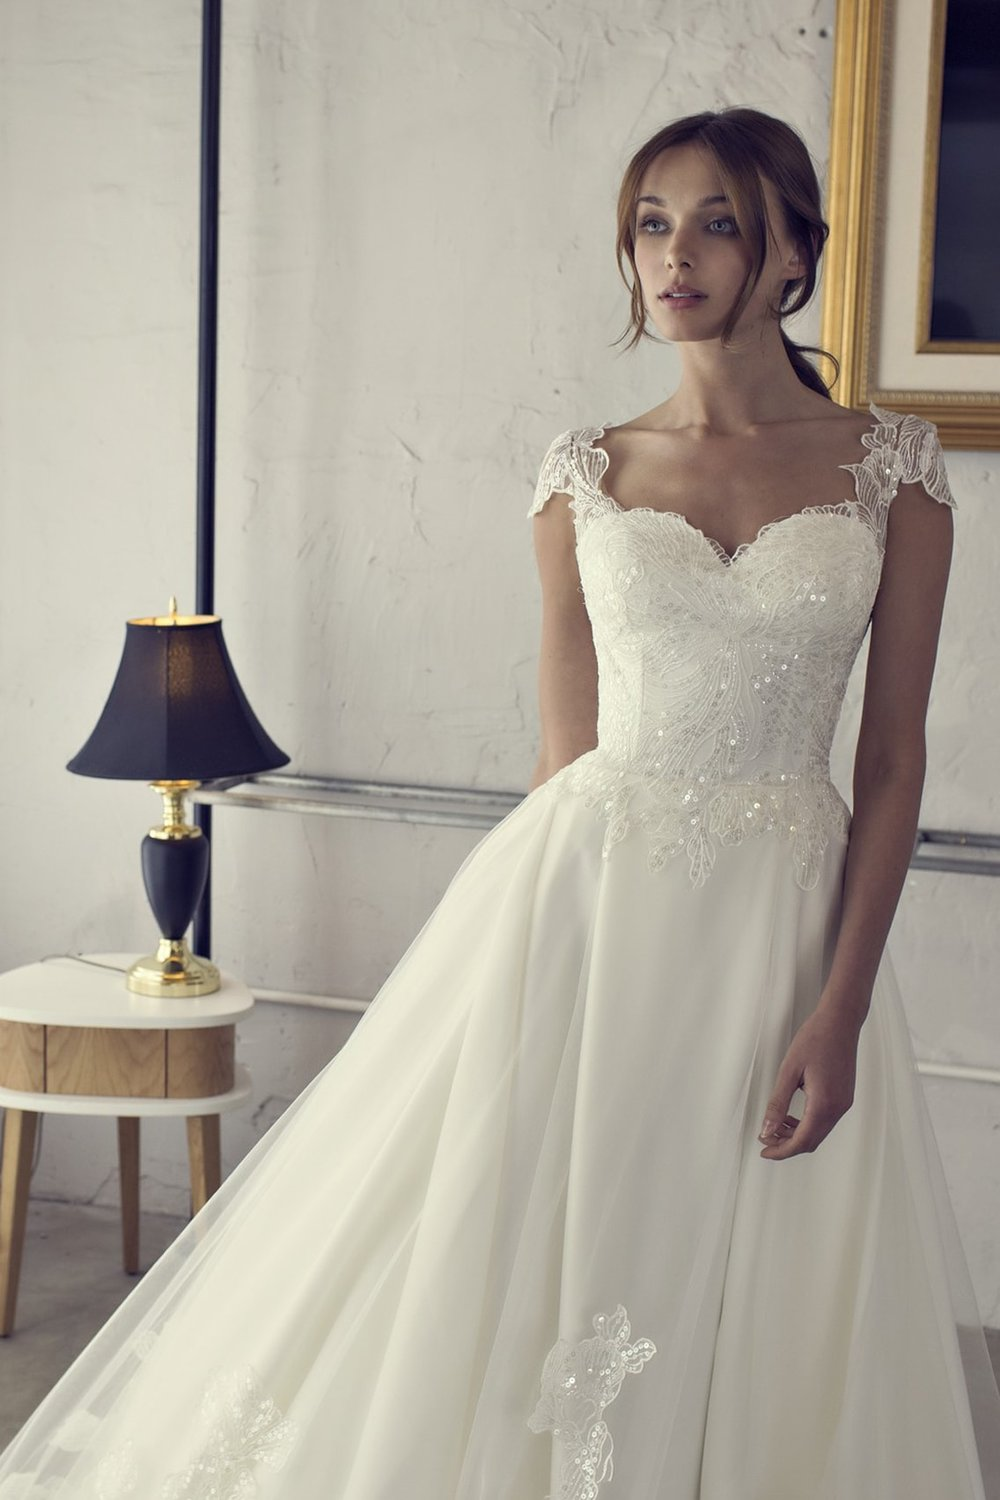 Camil wedding dresses in cardiff